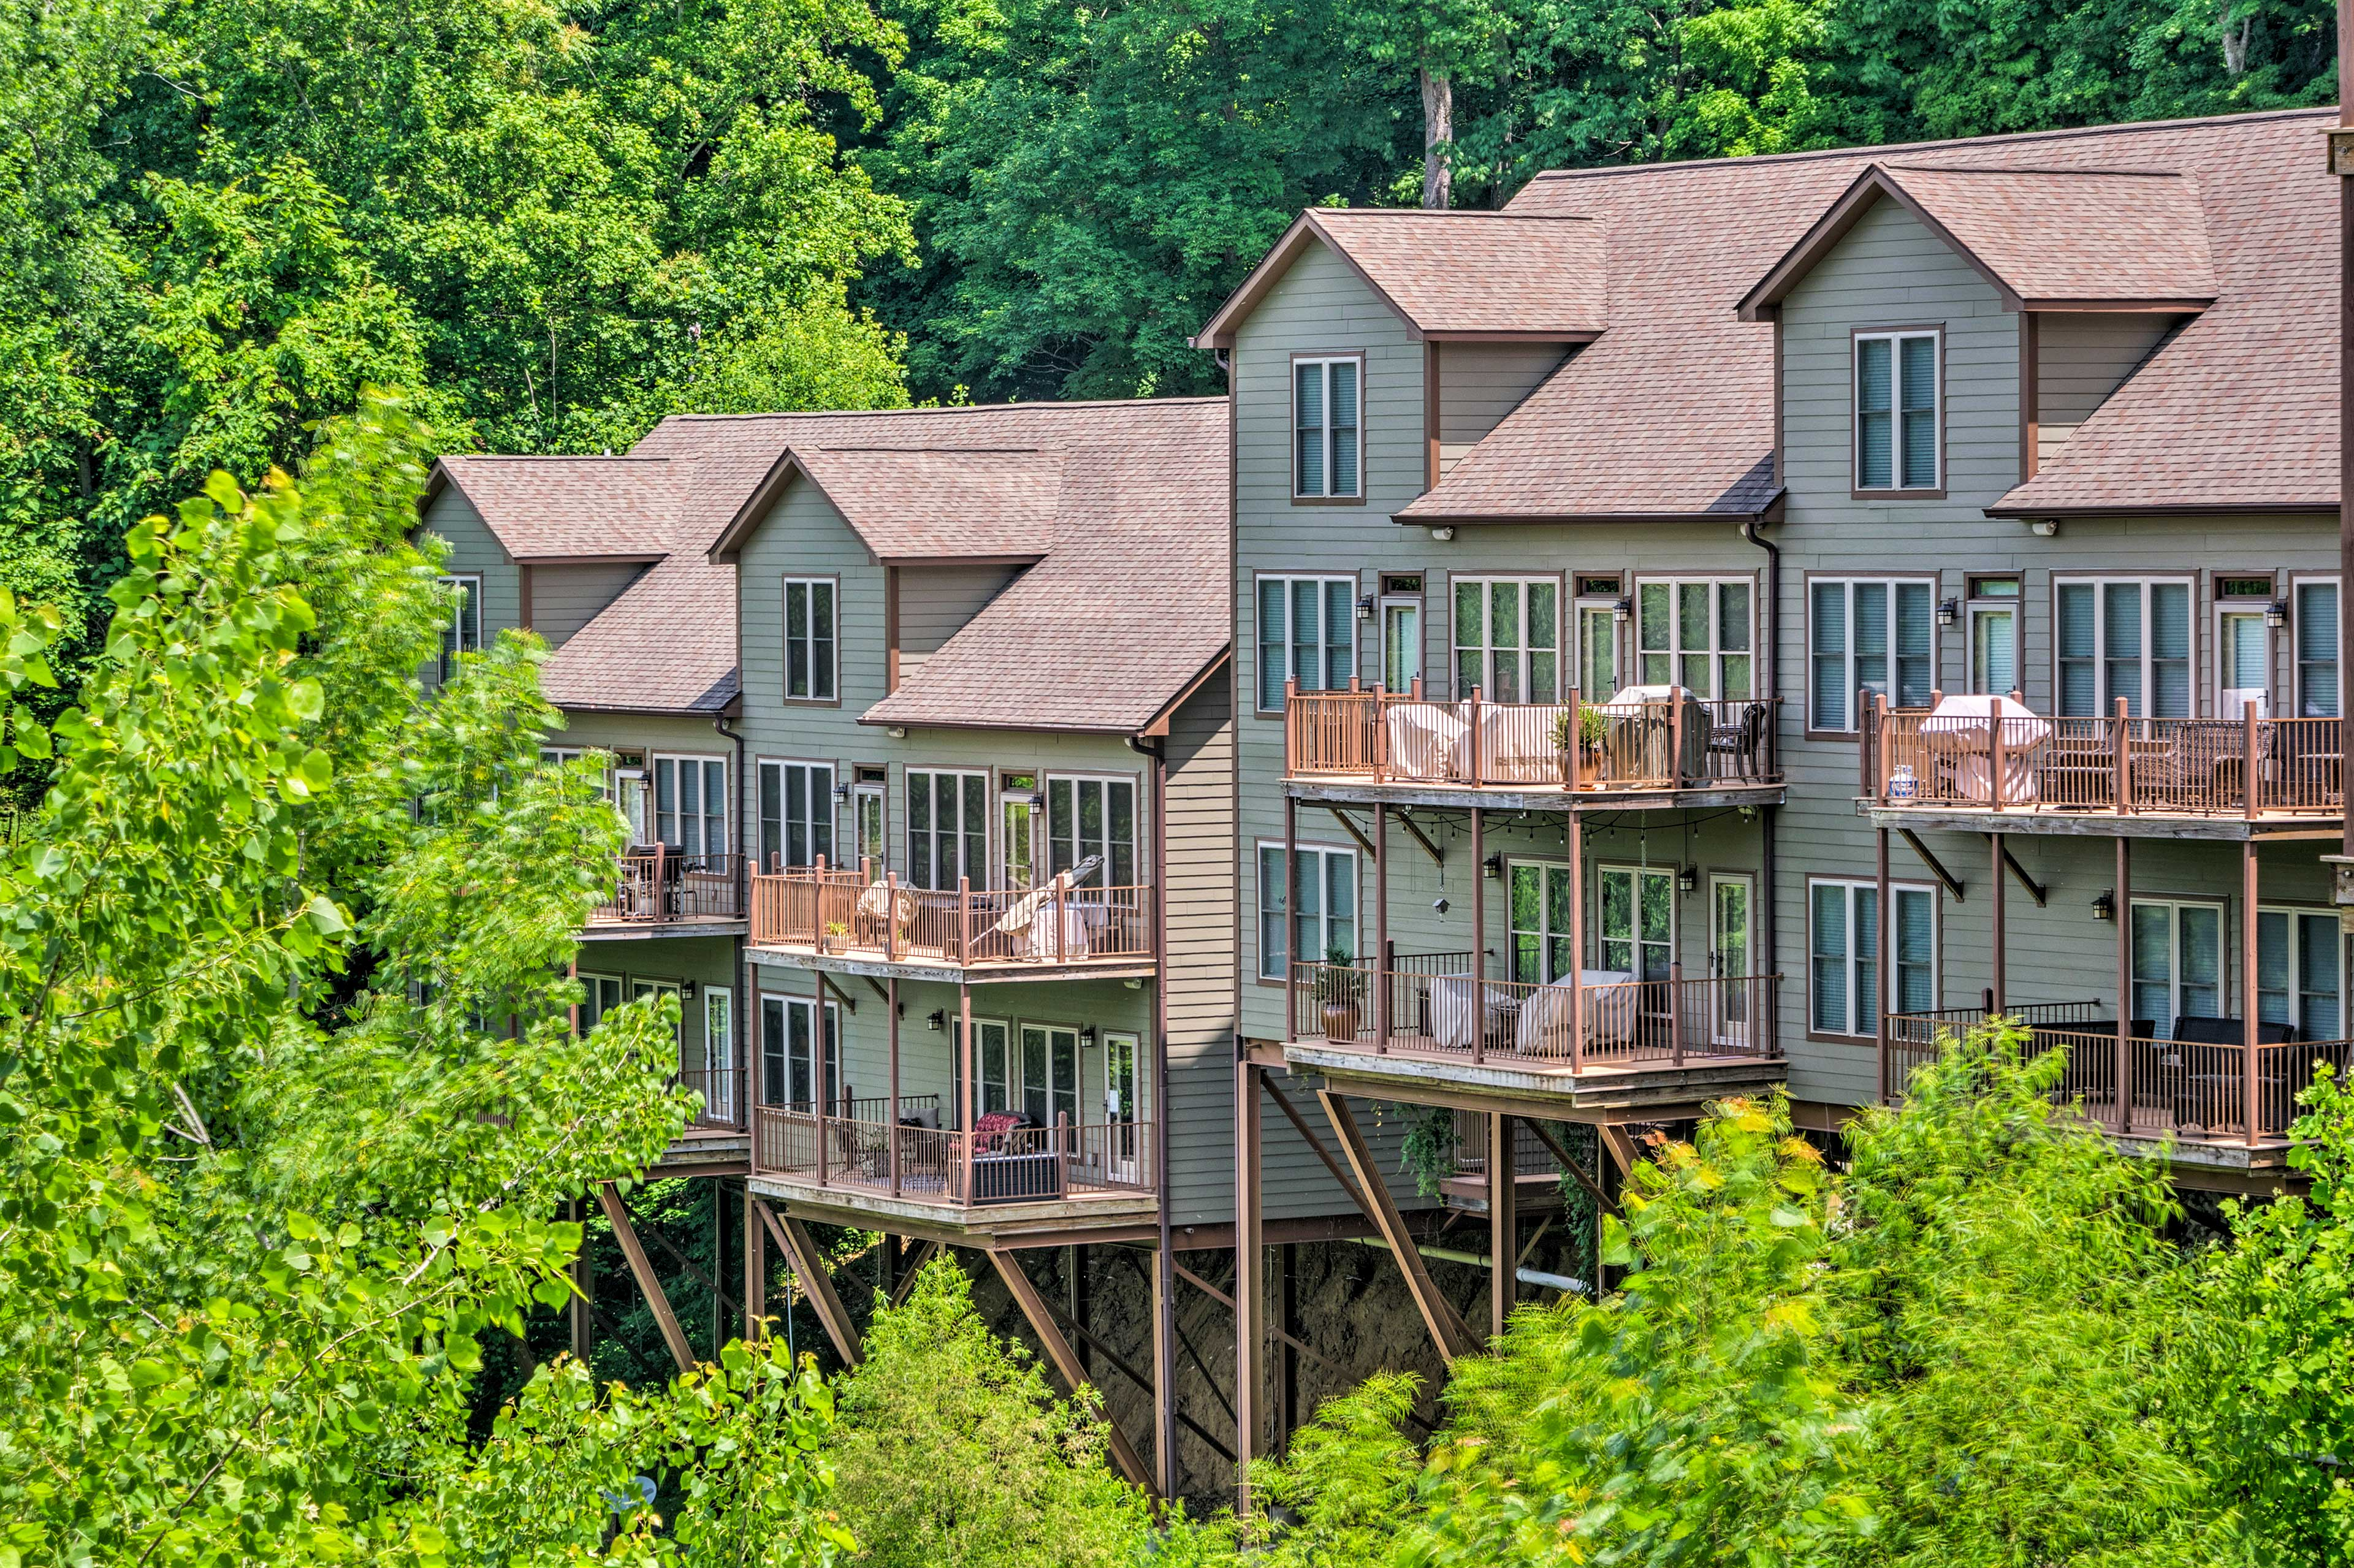 This condo complex is nestled into the mountainside.